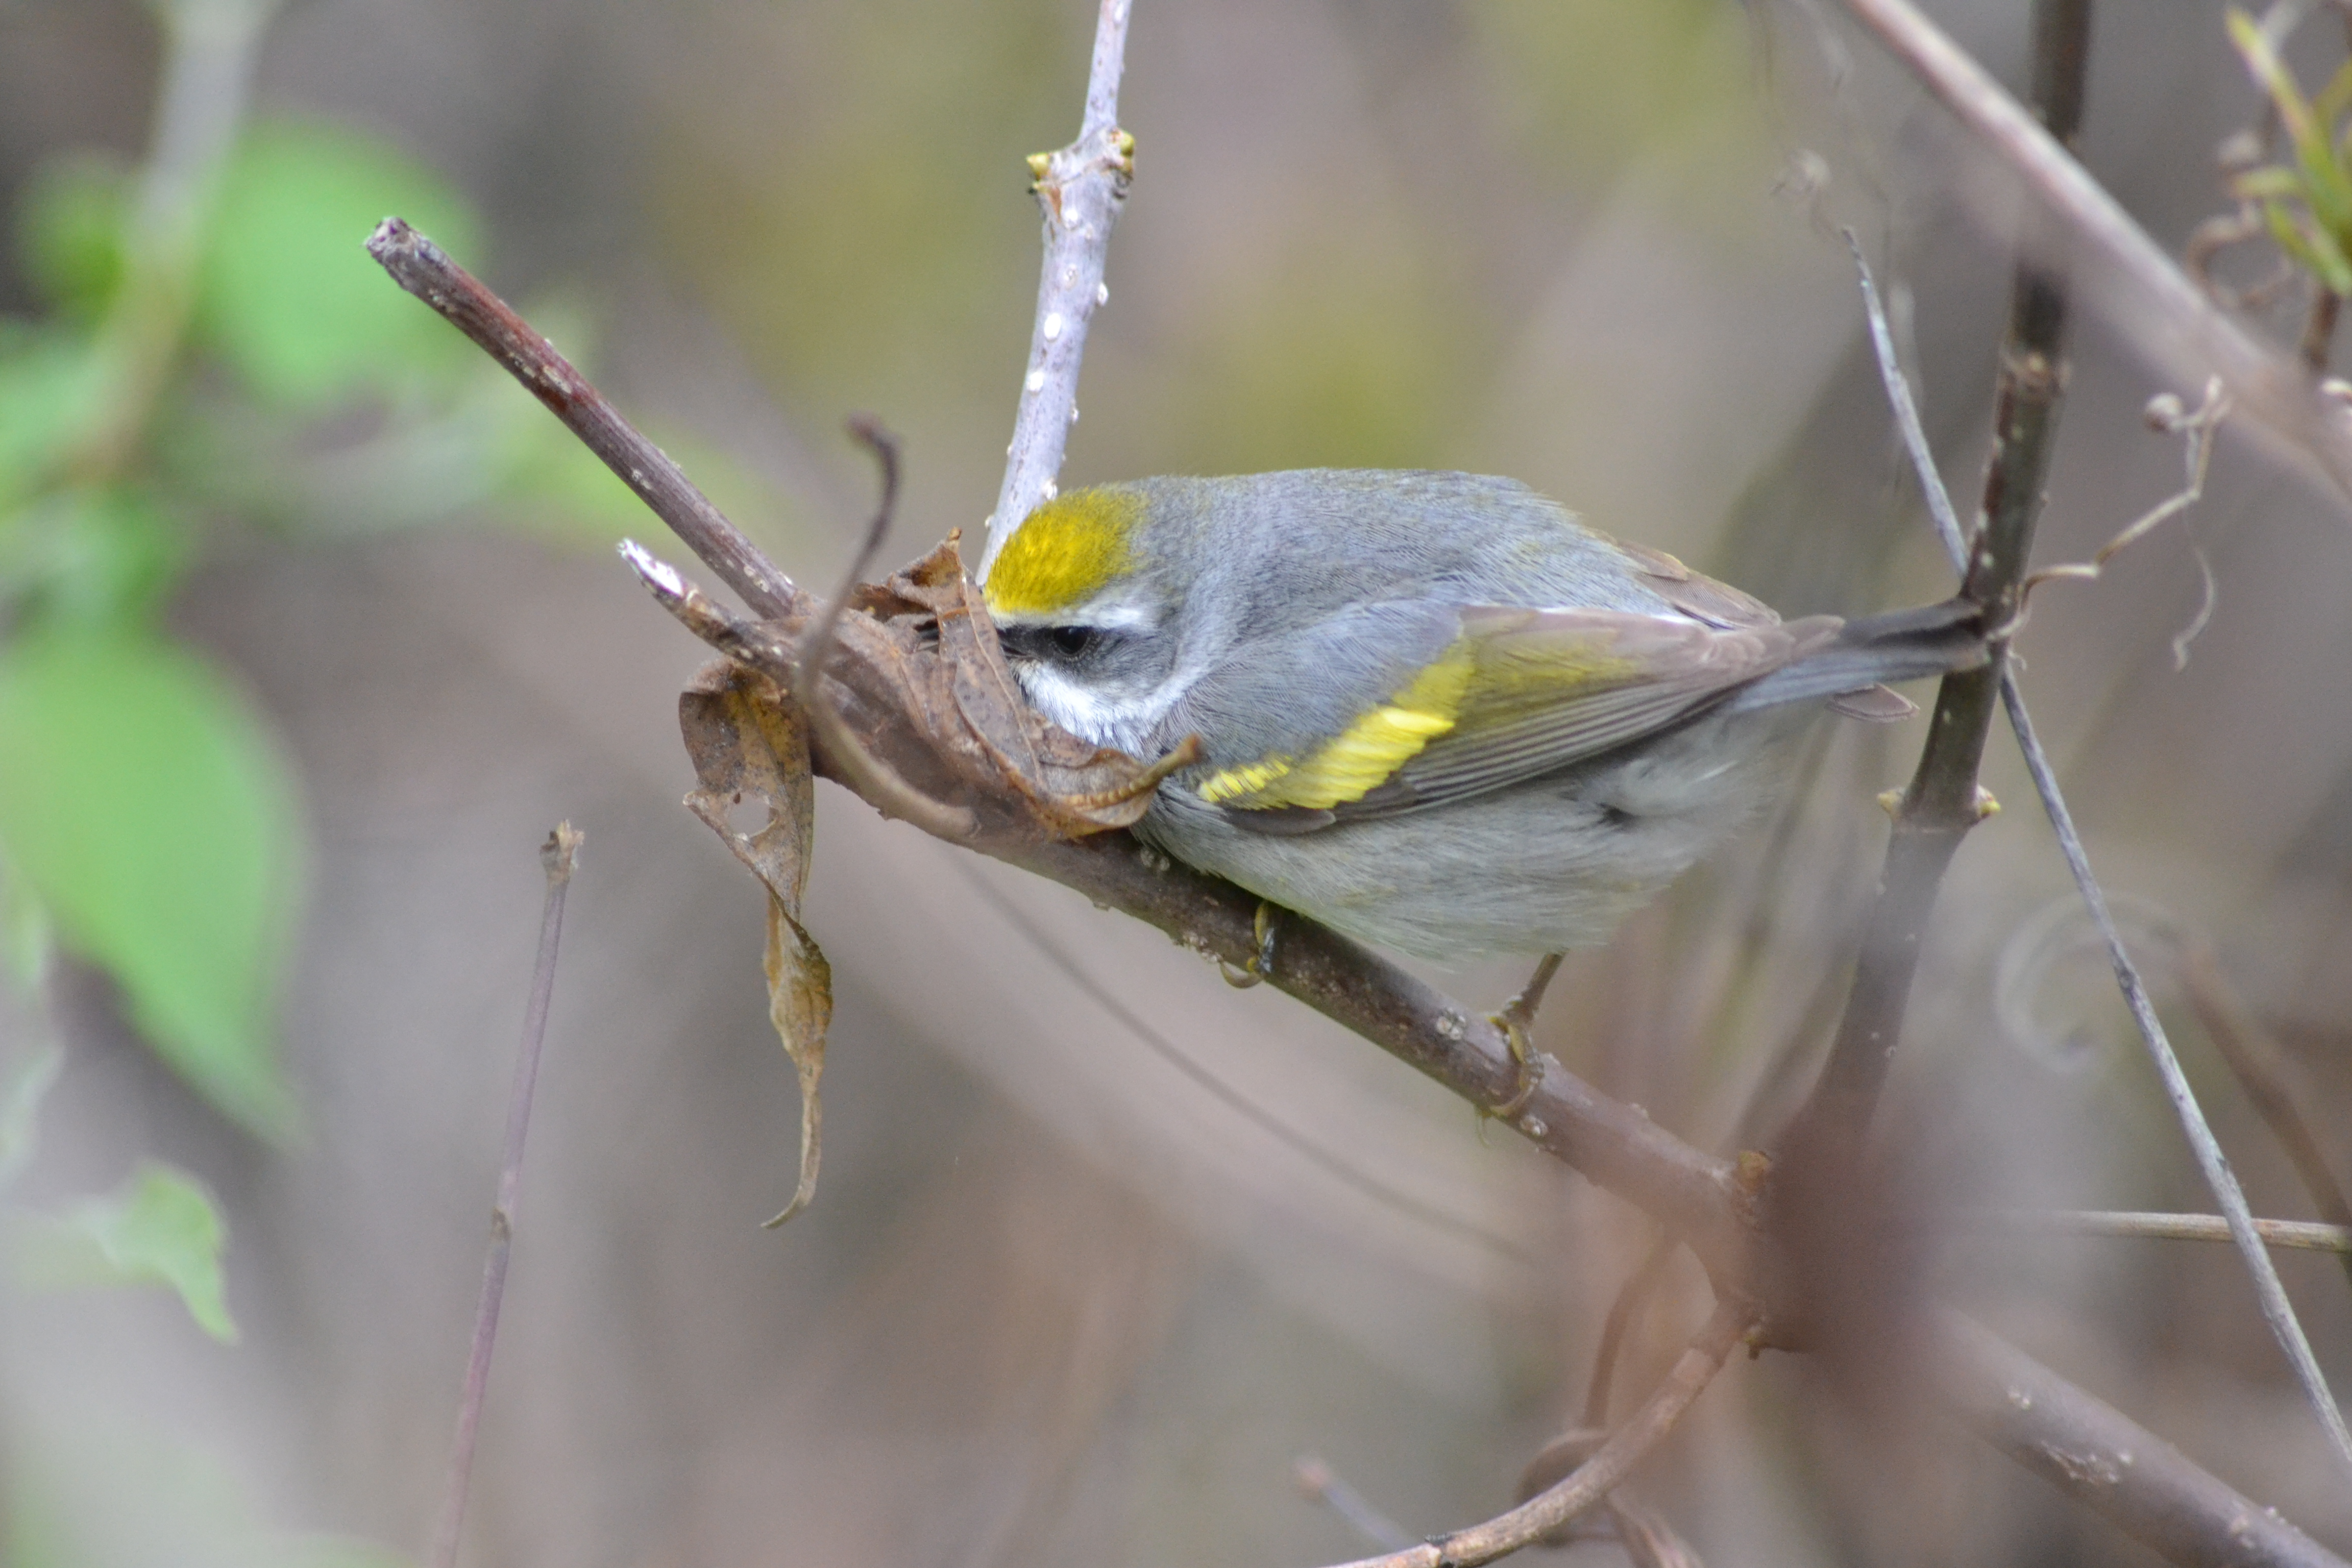 golden-winged_warbler_vermivora_chrysoptera_14023132080